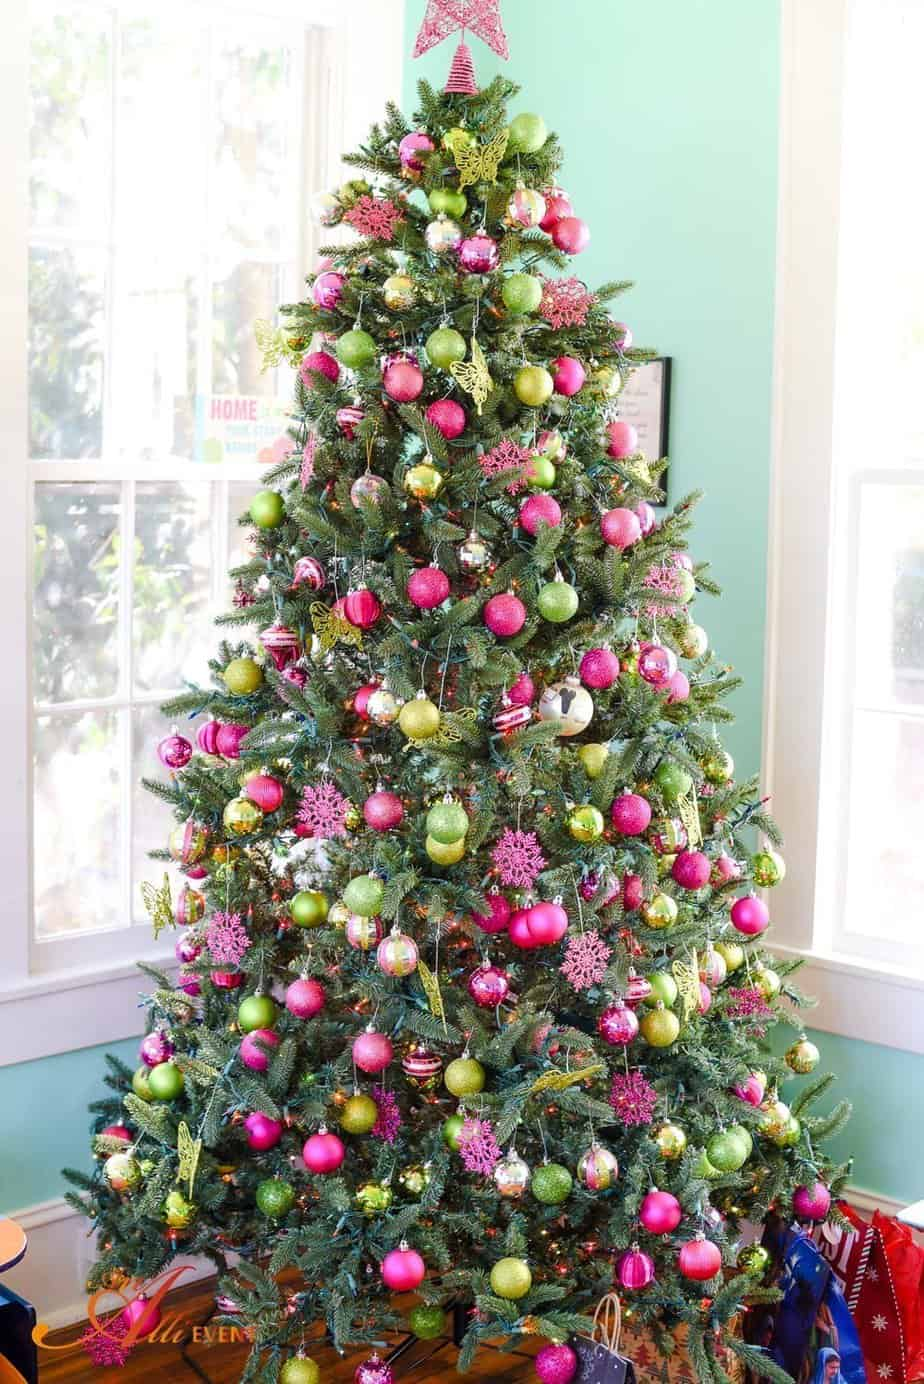 Beautiful Christmas Tree Decorating Ideas An Alli Event